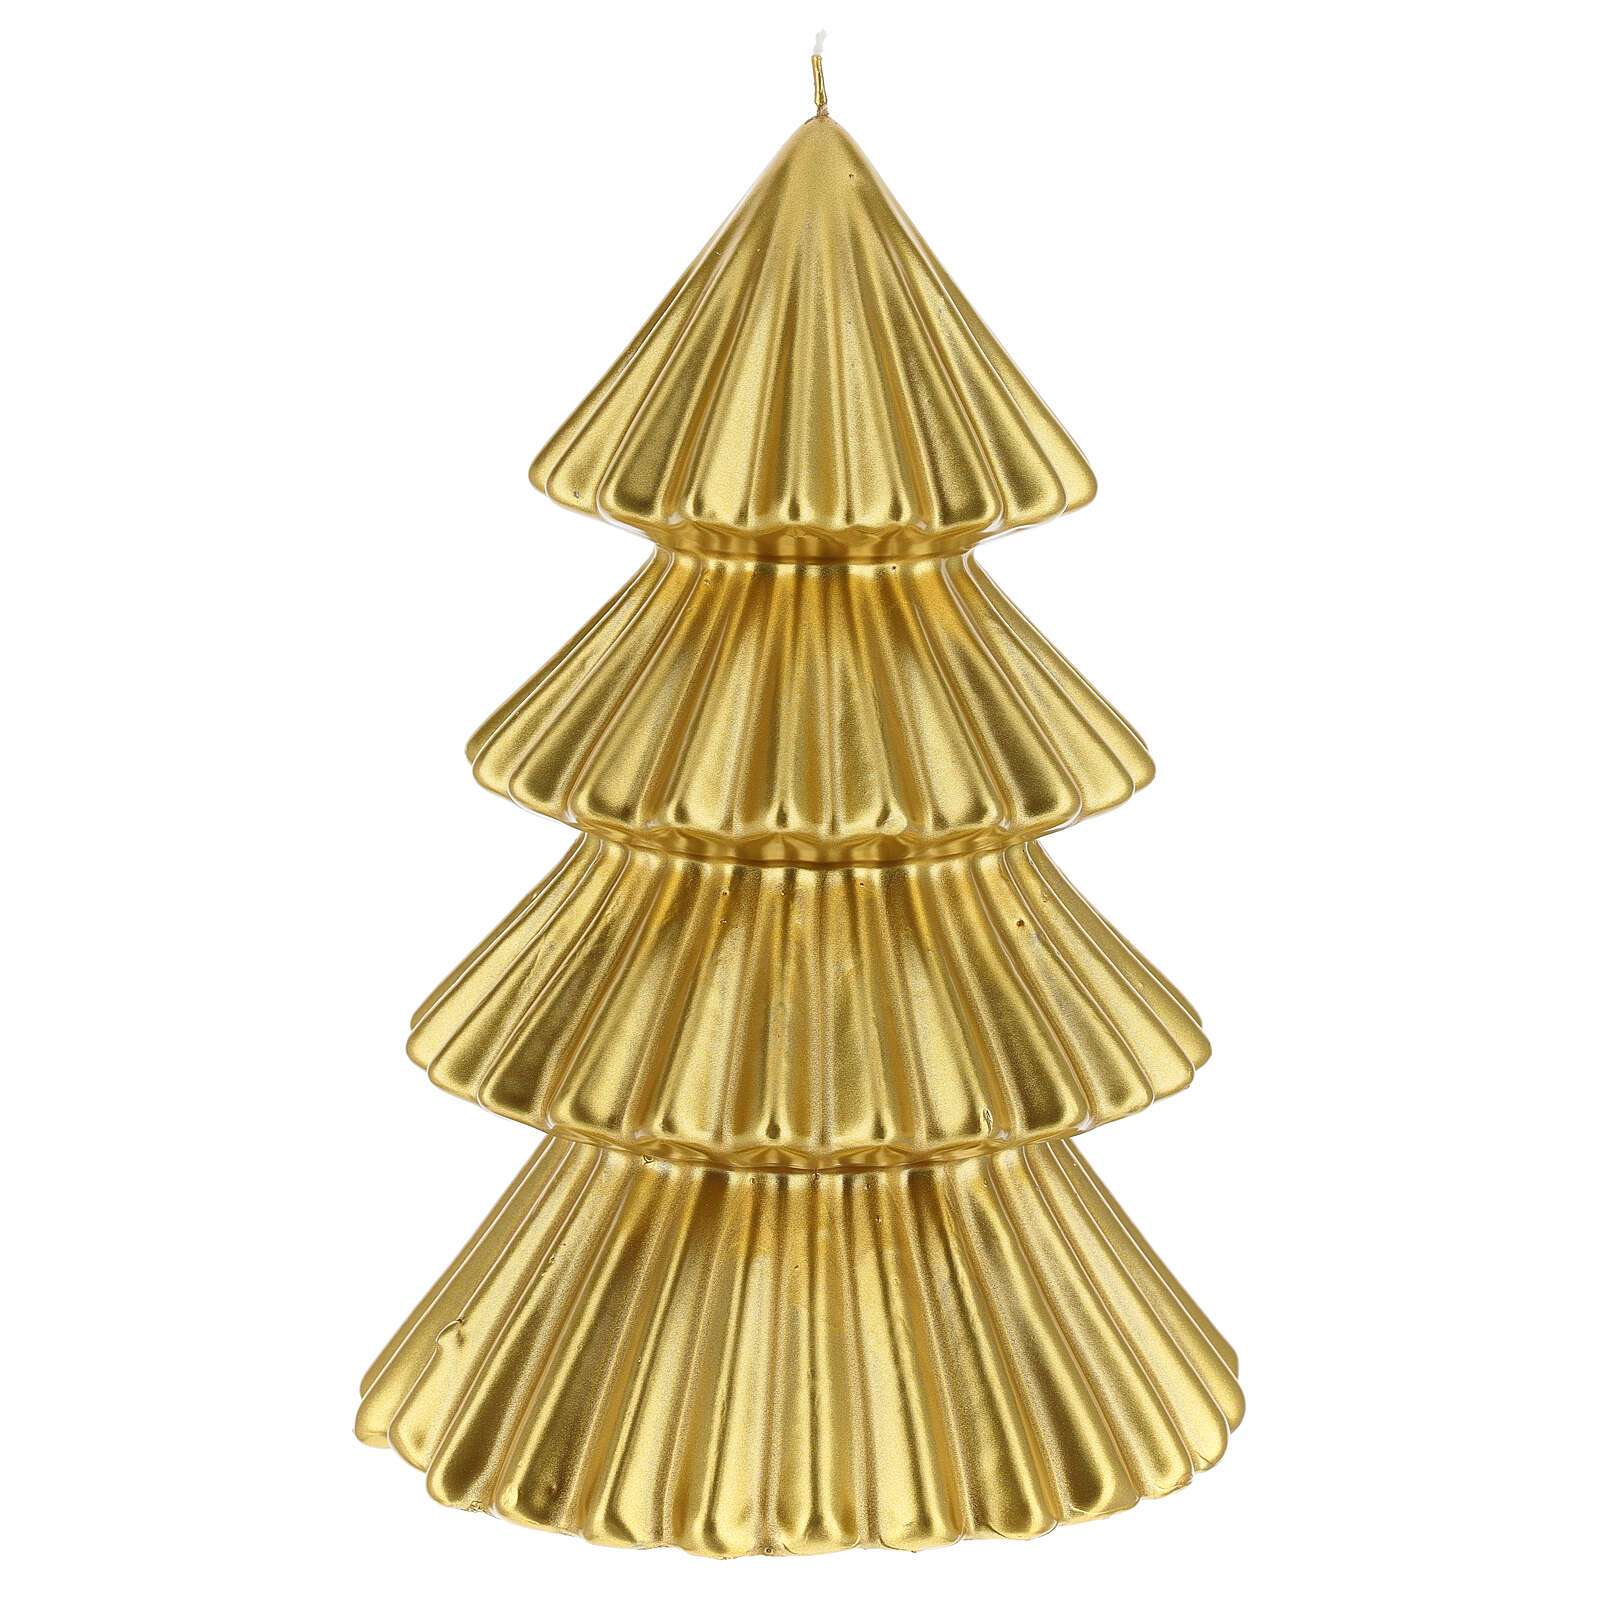 Golden Tokyo Christmas candle tree shape 9 in 3